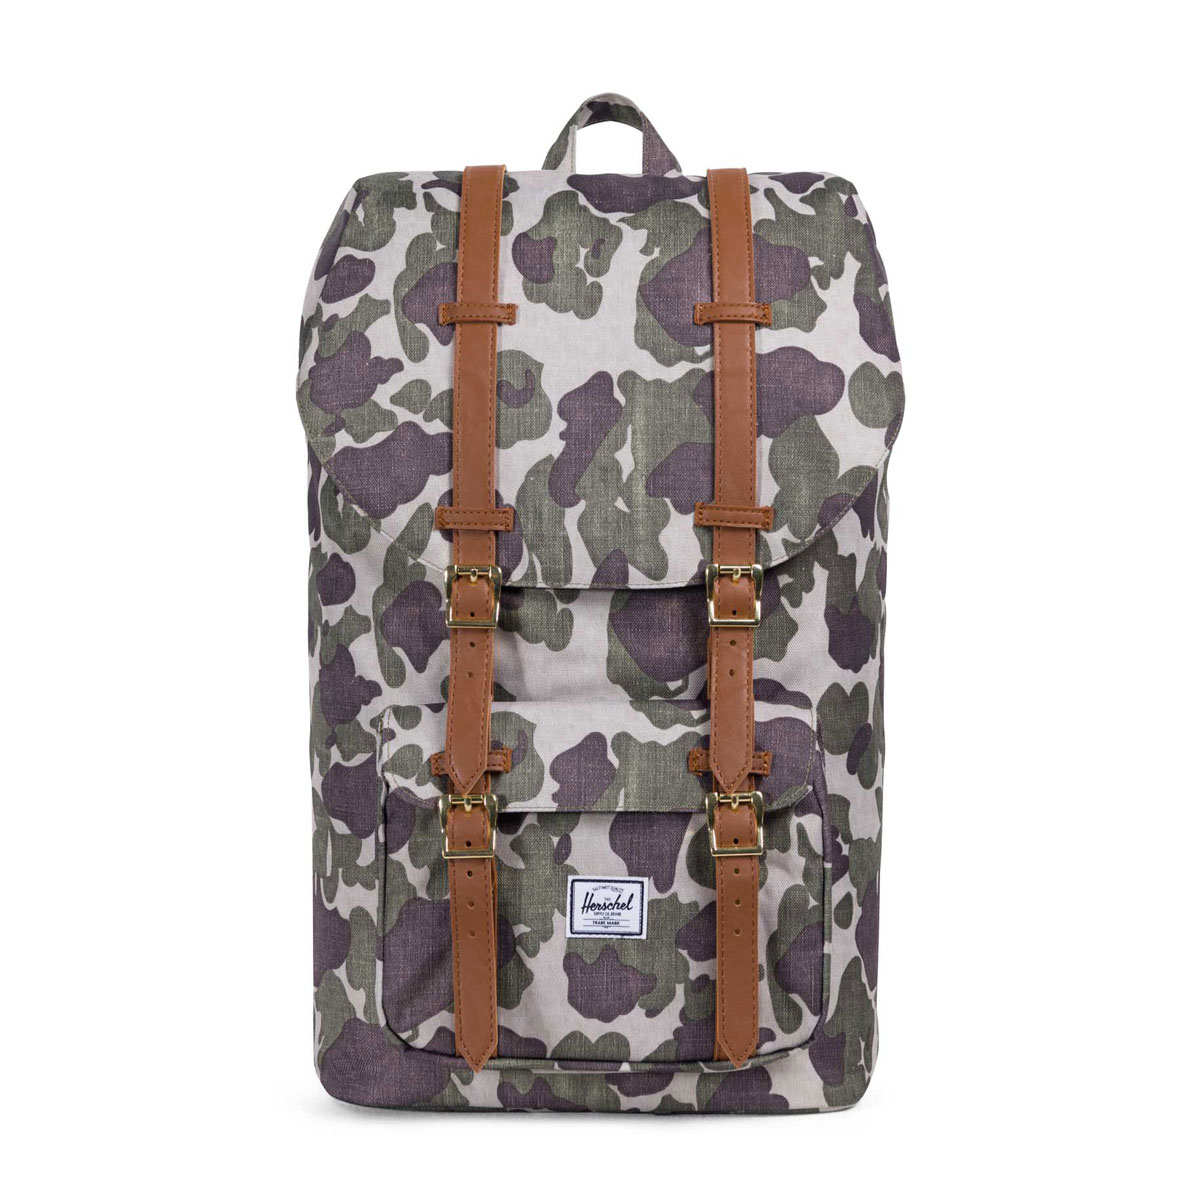 Herschel Supply Co LITTLE AMERICA BACKPACK(ハーシェル サプライ リトル アメリカ バックパック)Frog Camo/Tan Synthetic Leather【メンズ レディース バックパック】18SP-I